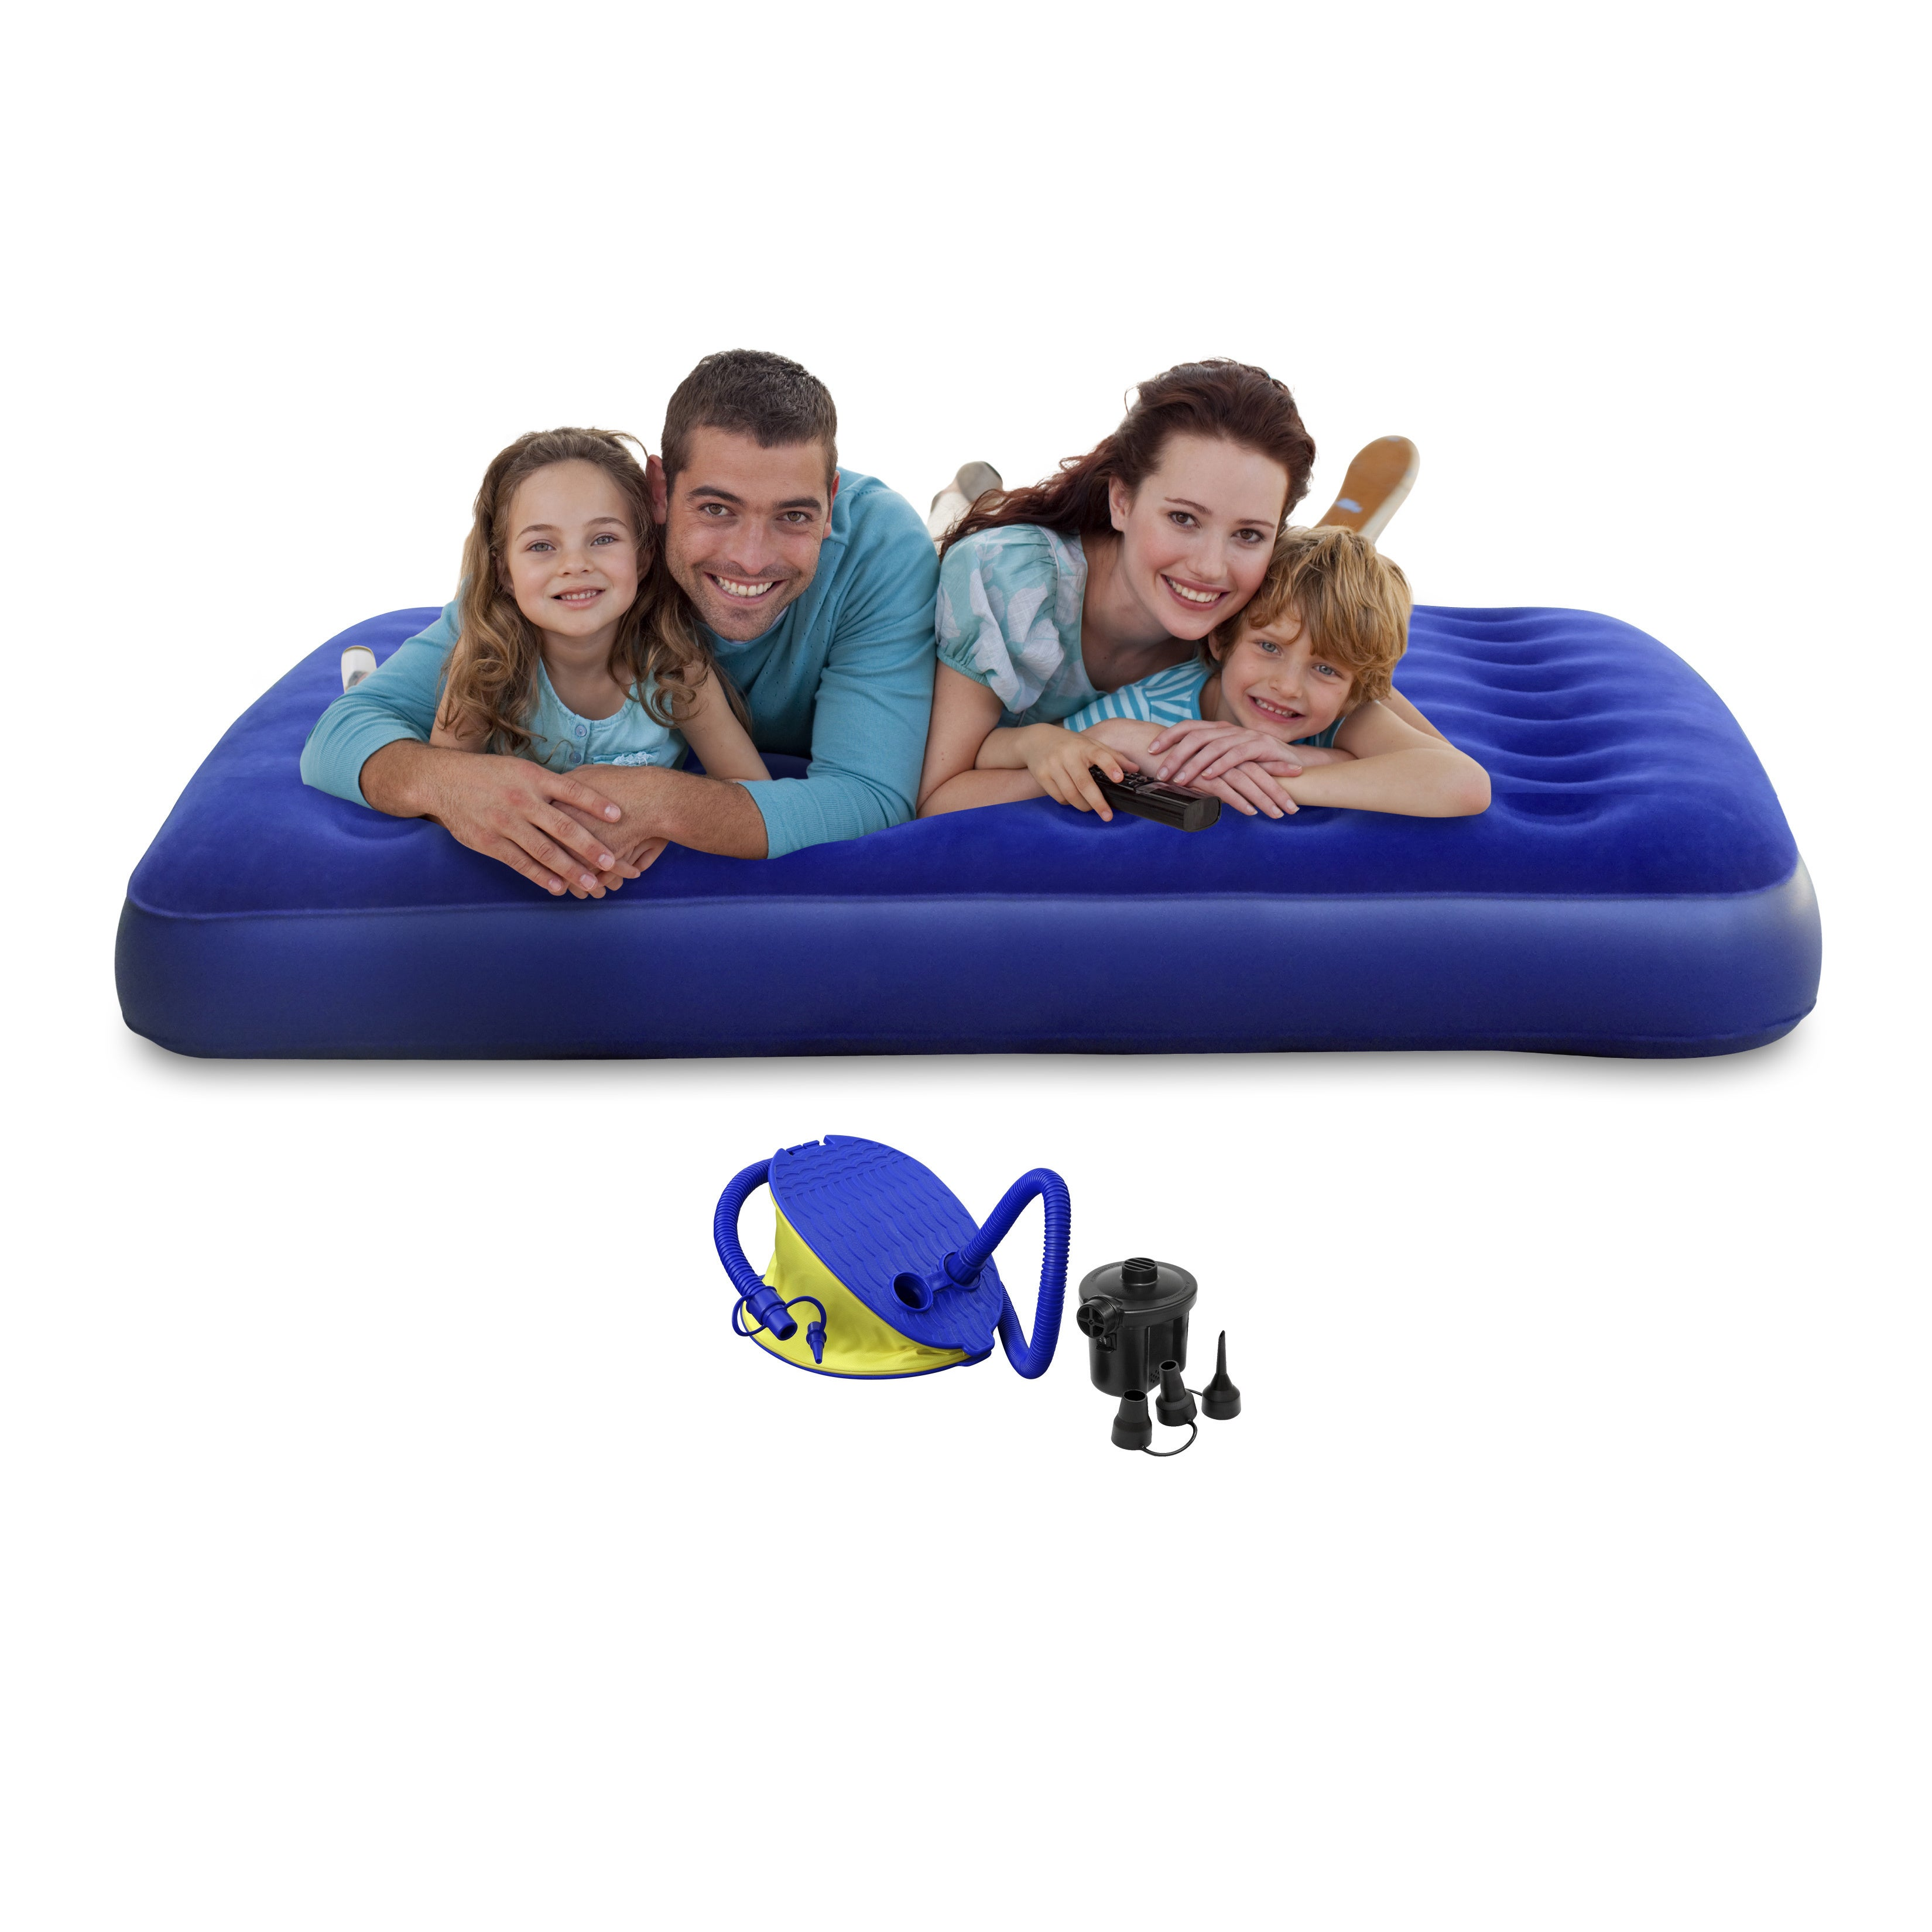 3c9b4774709 GigaTent Twin Air Mattress Includes battery pump and foot pump Portable  Mattress for Camping